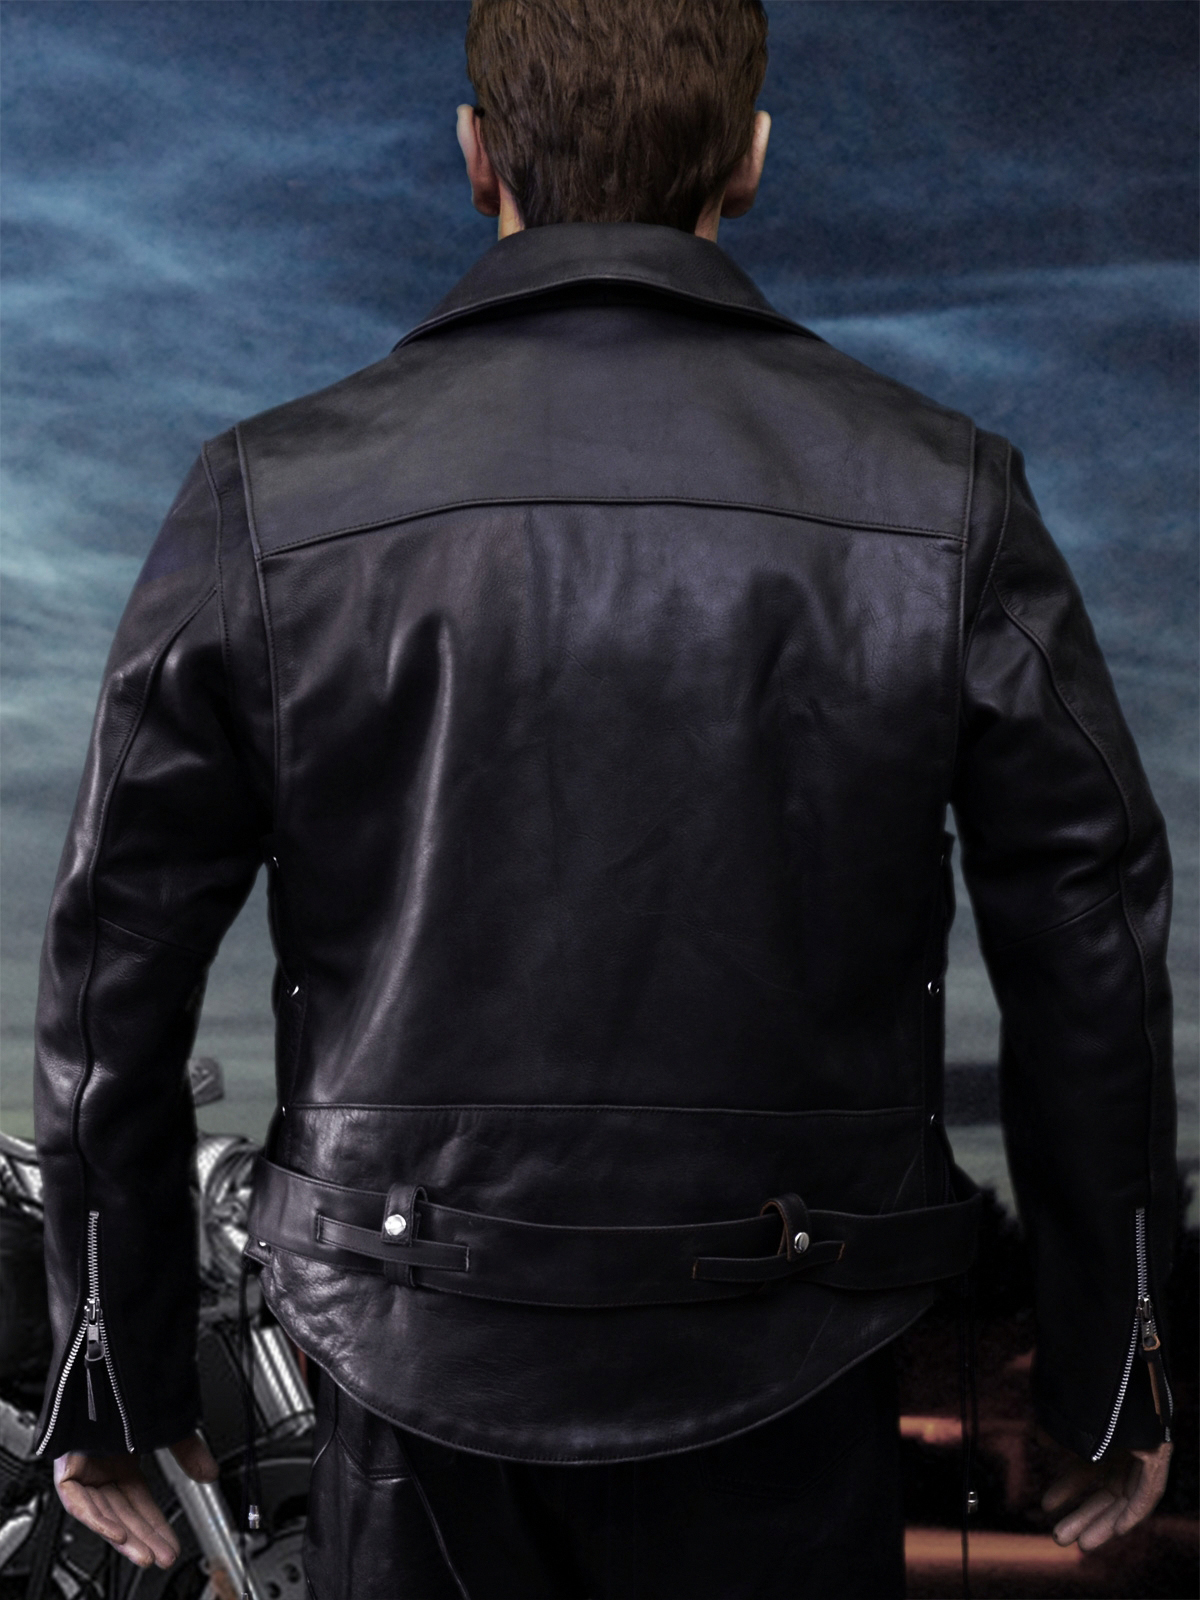 01a33deae Terminator 2 Leather Jacket - MAX CADY